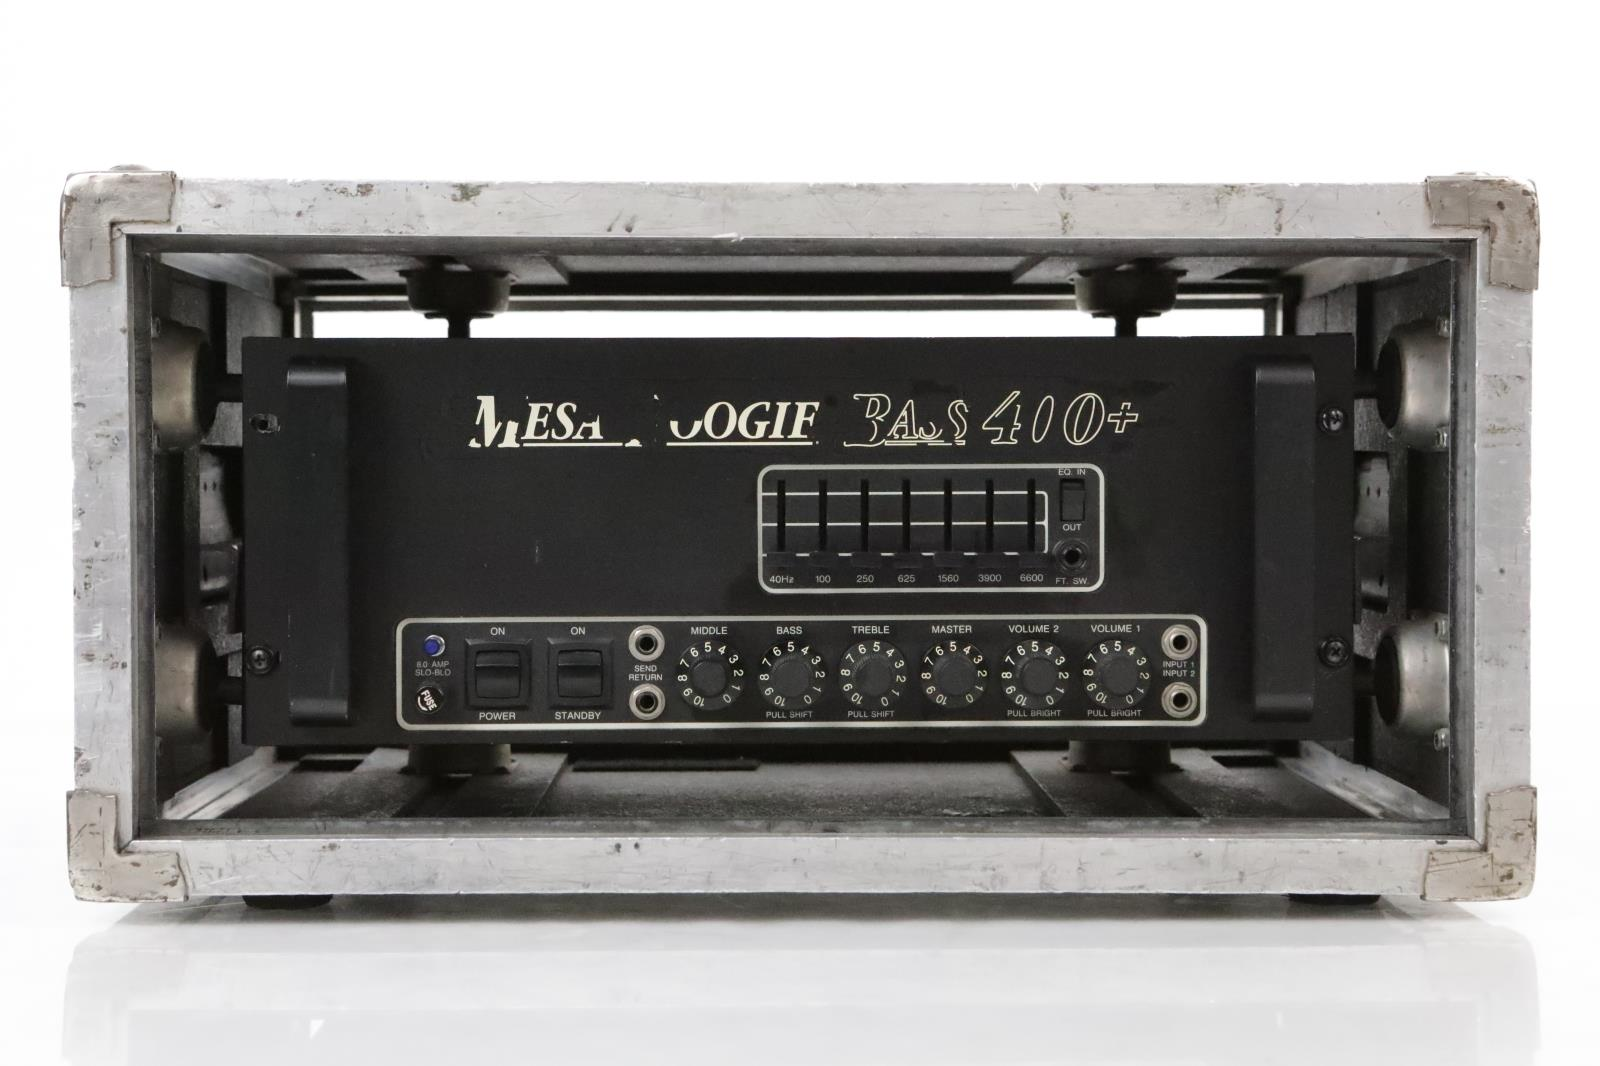 Mesa Boogie Bass 400+ Bass Amp w/ Mesa SUS-4 ATA Case Owned by Satyricon #35060